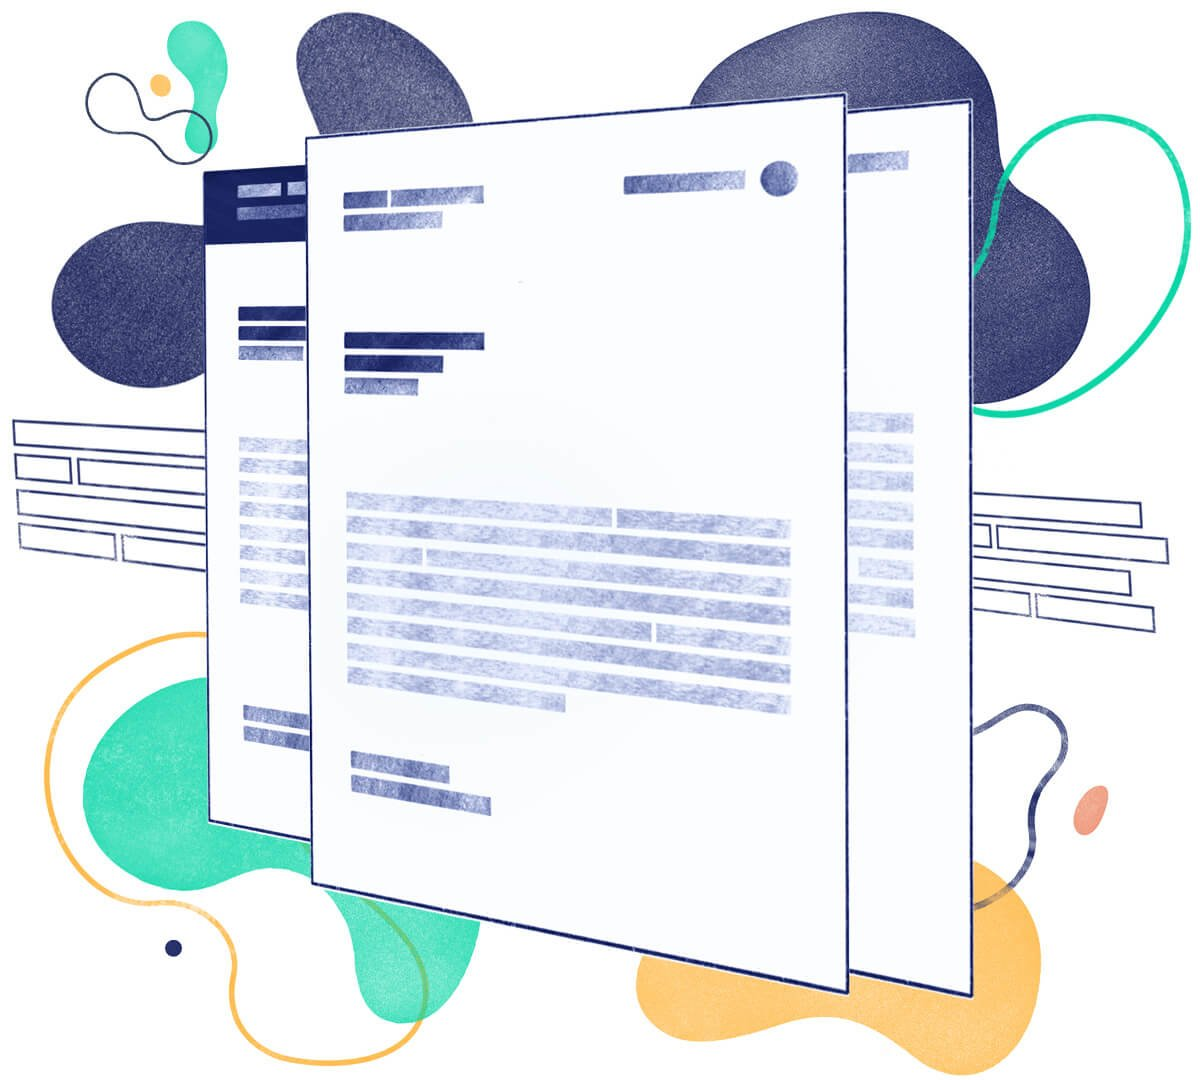 Business Analyst Cover Letter: Examples & Ready-to-Use Templates